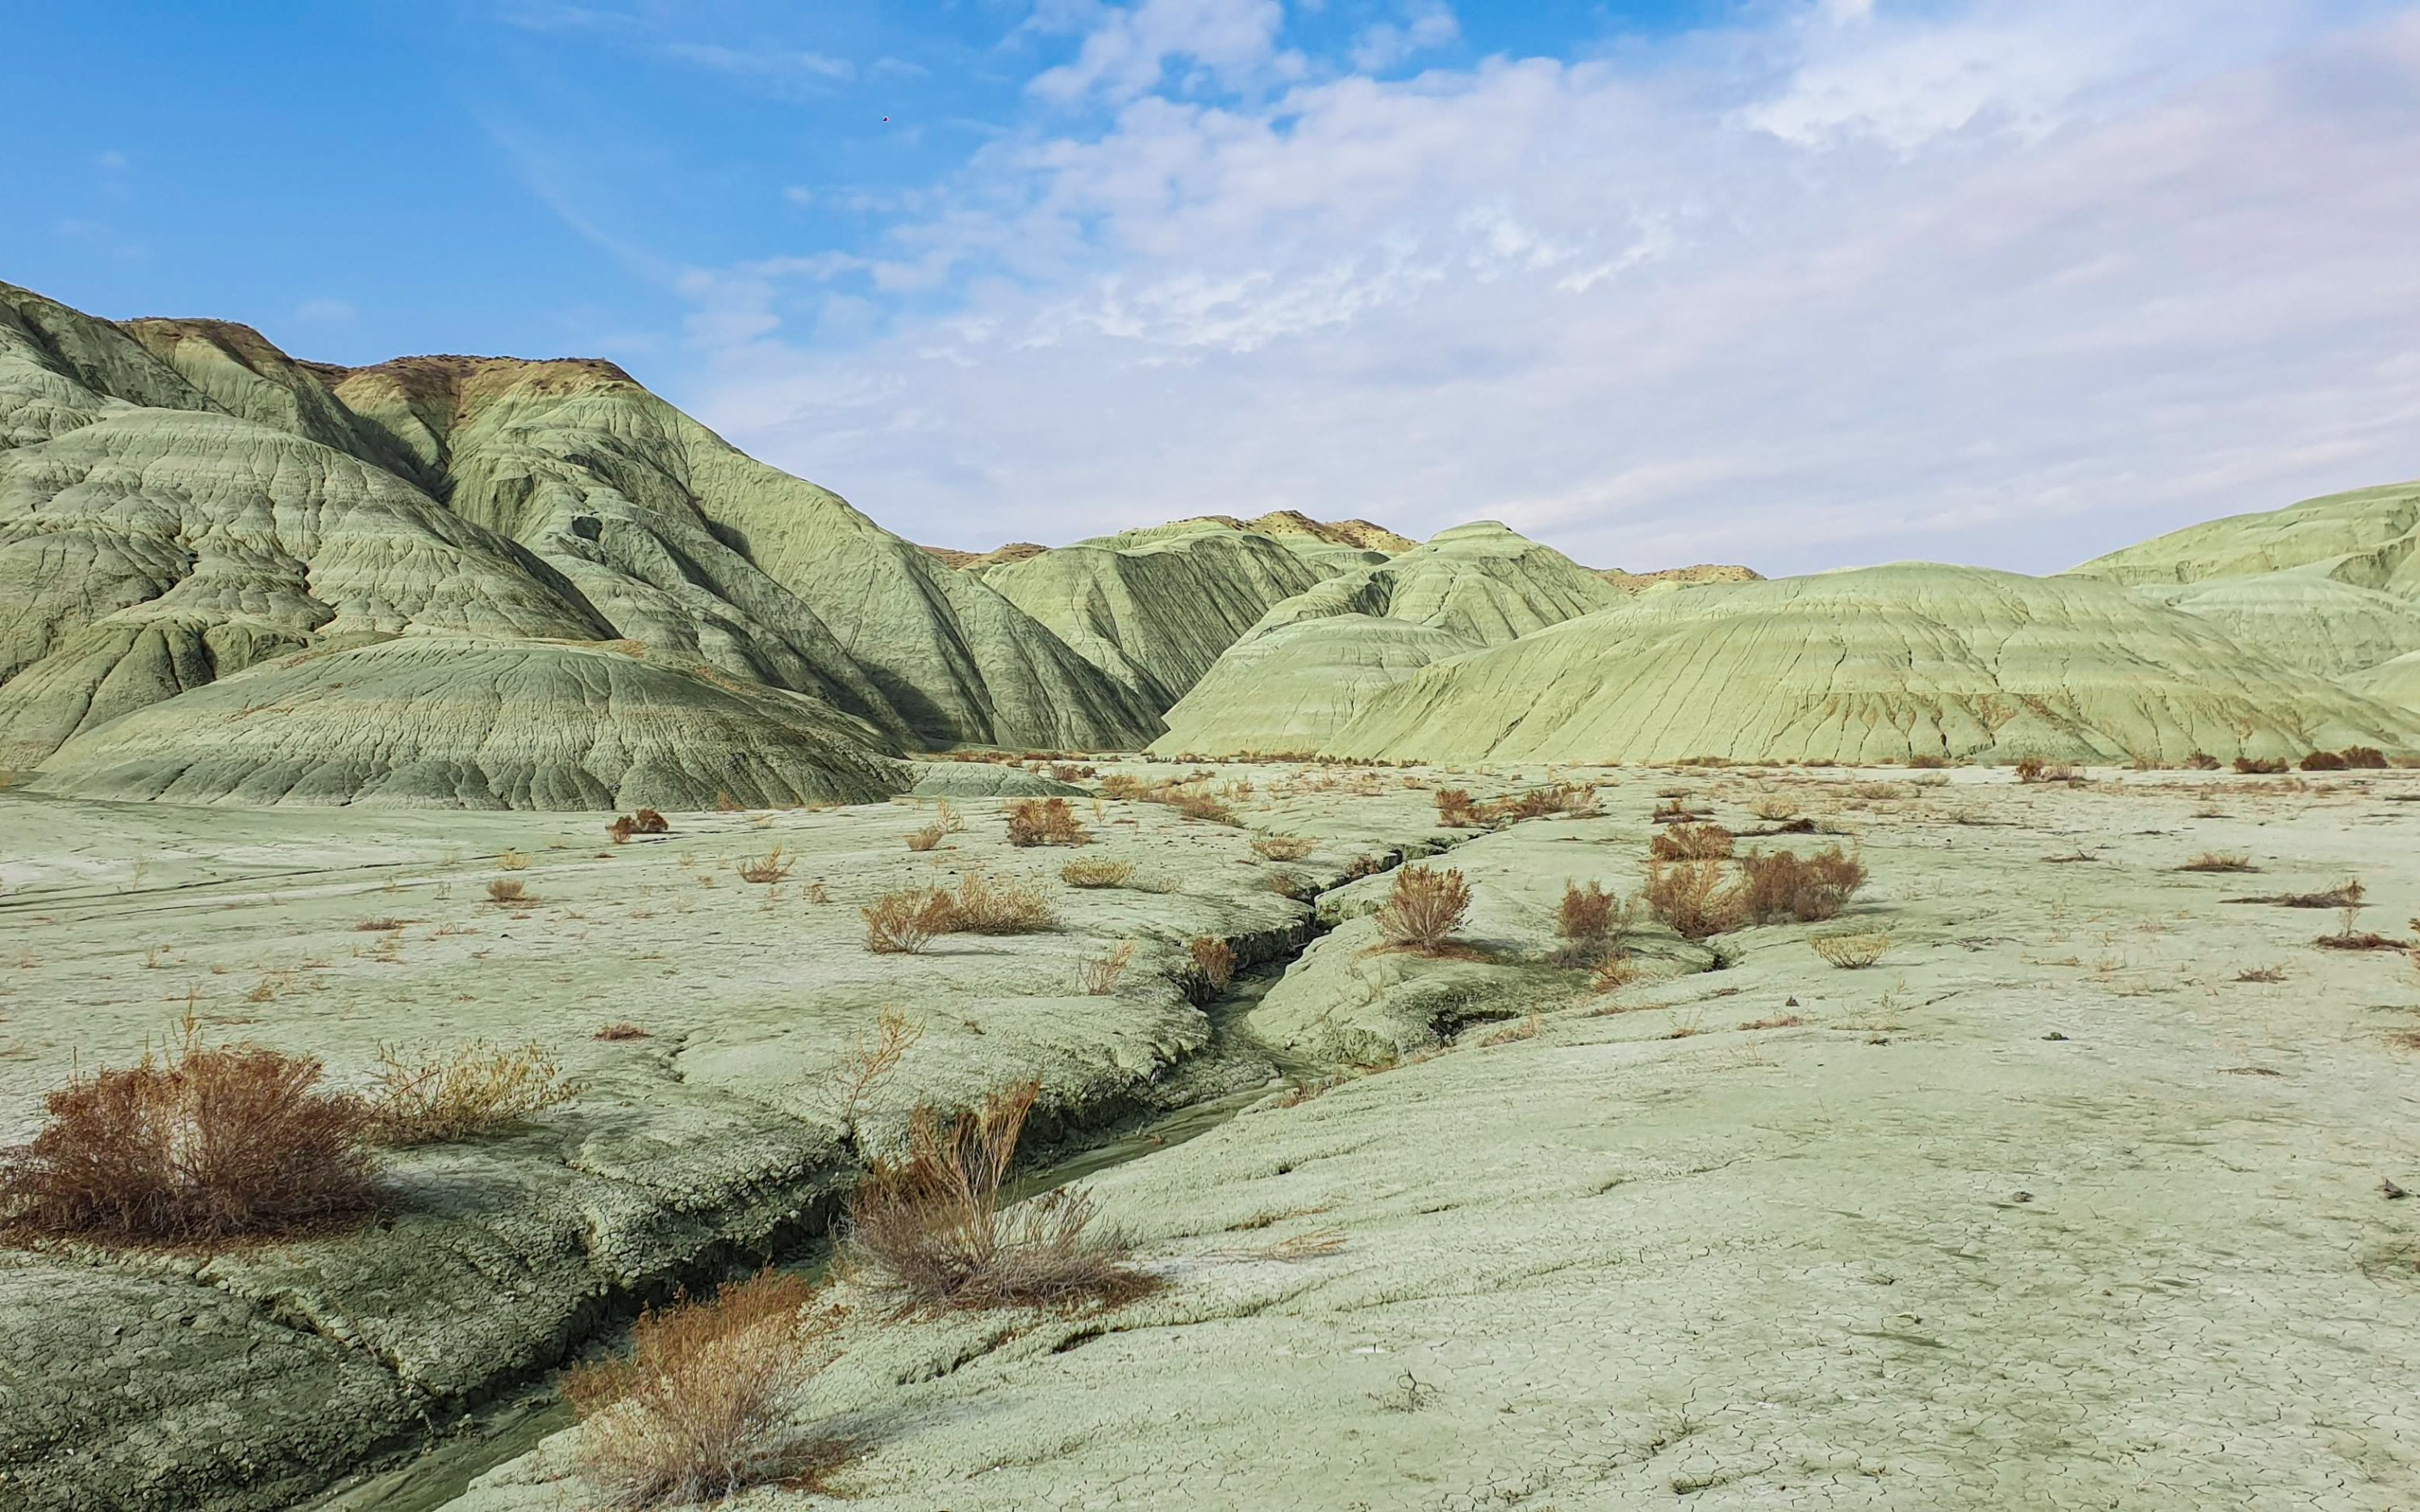 With not a single grass in sight, the green hills of the valley are reminiscent of deserts.